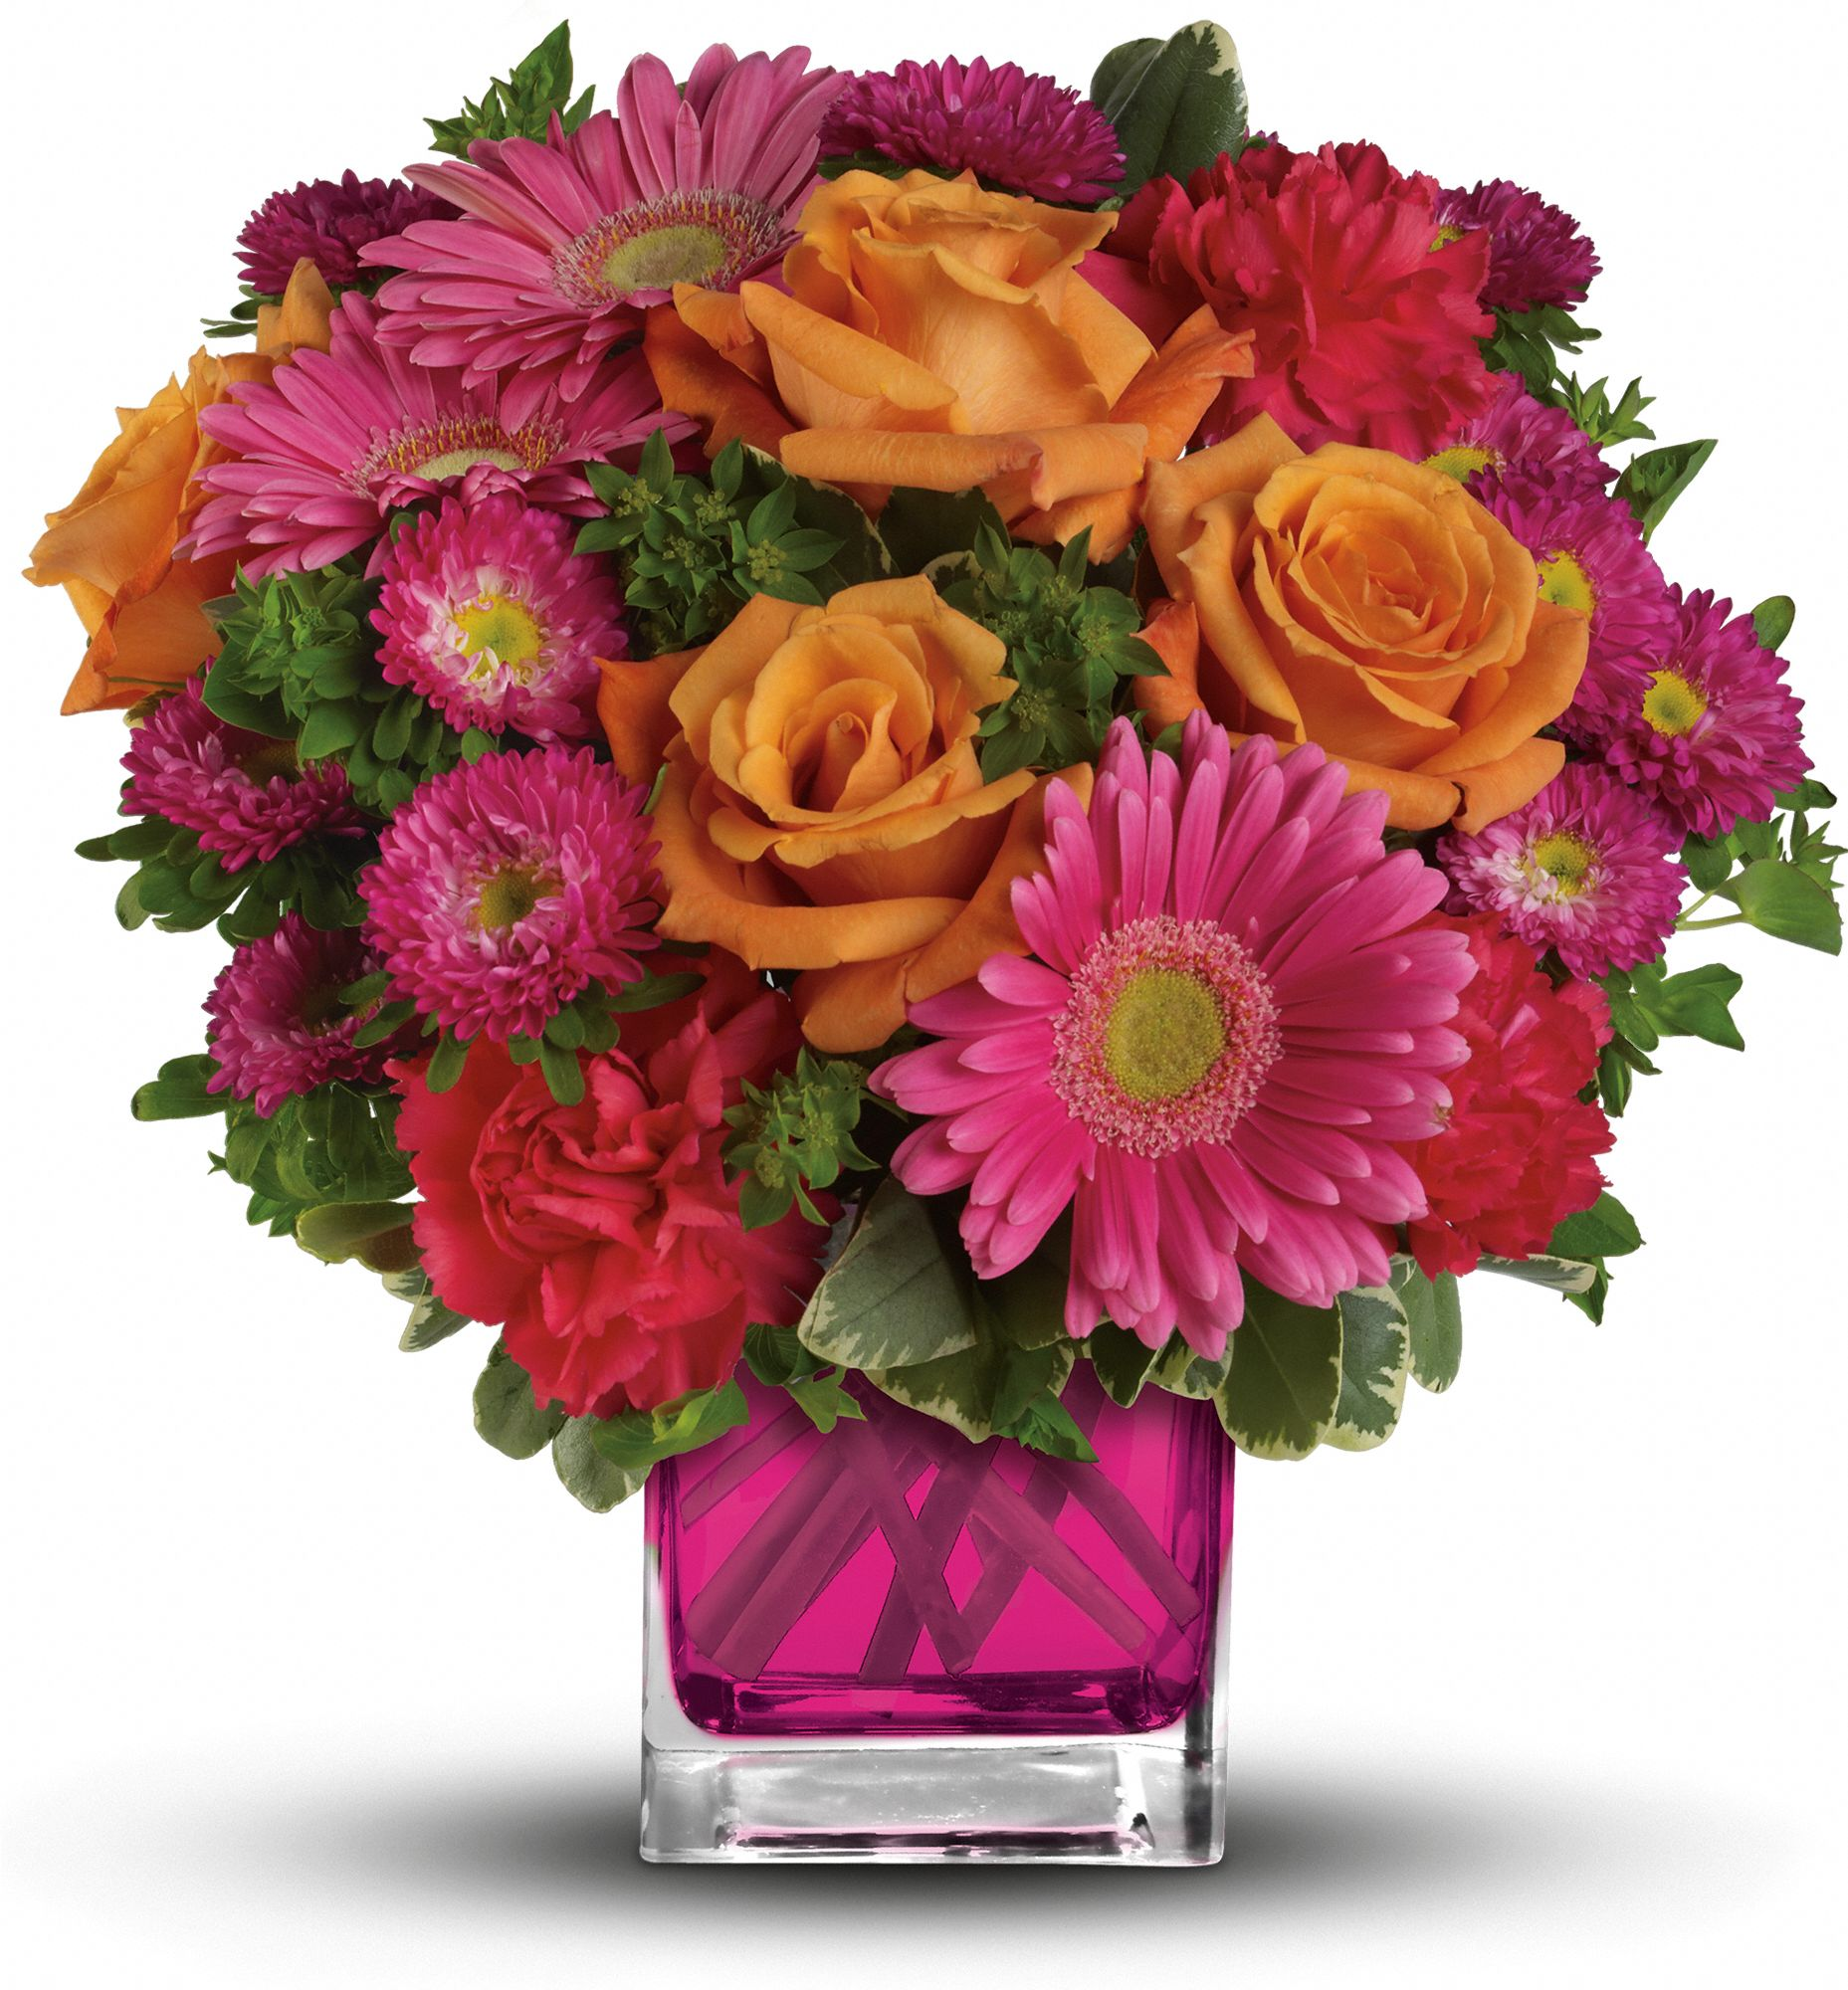 Turn up the Pink Bouquet - pink and orange flowers in a fuschia vase